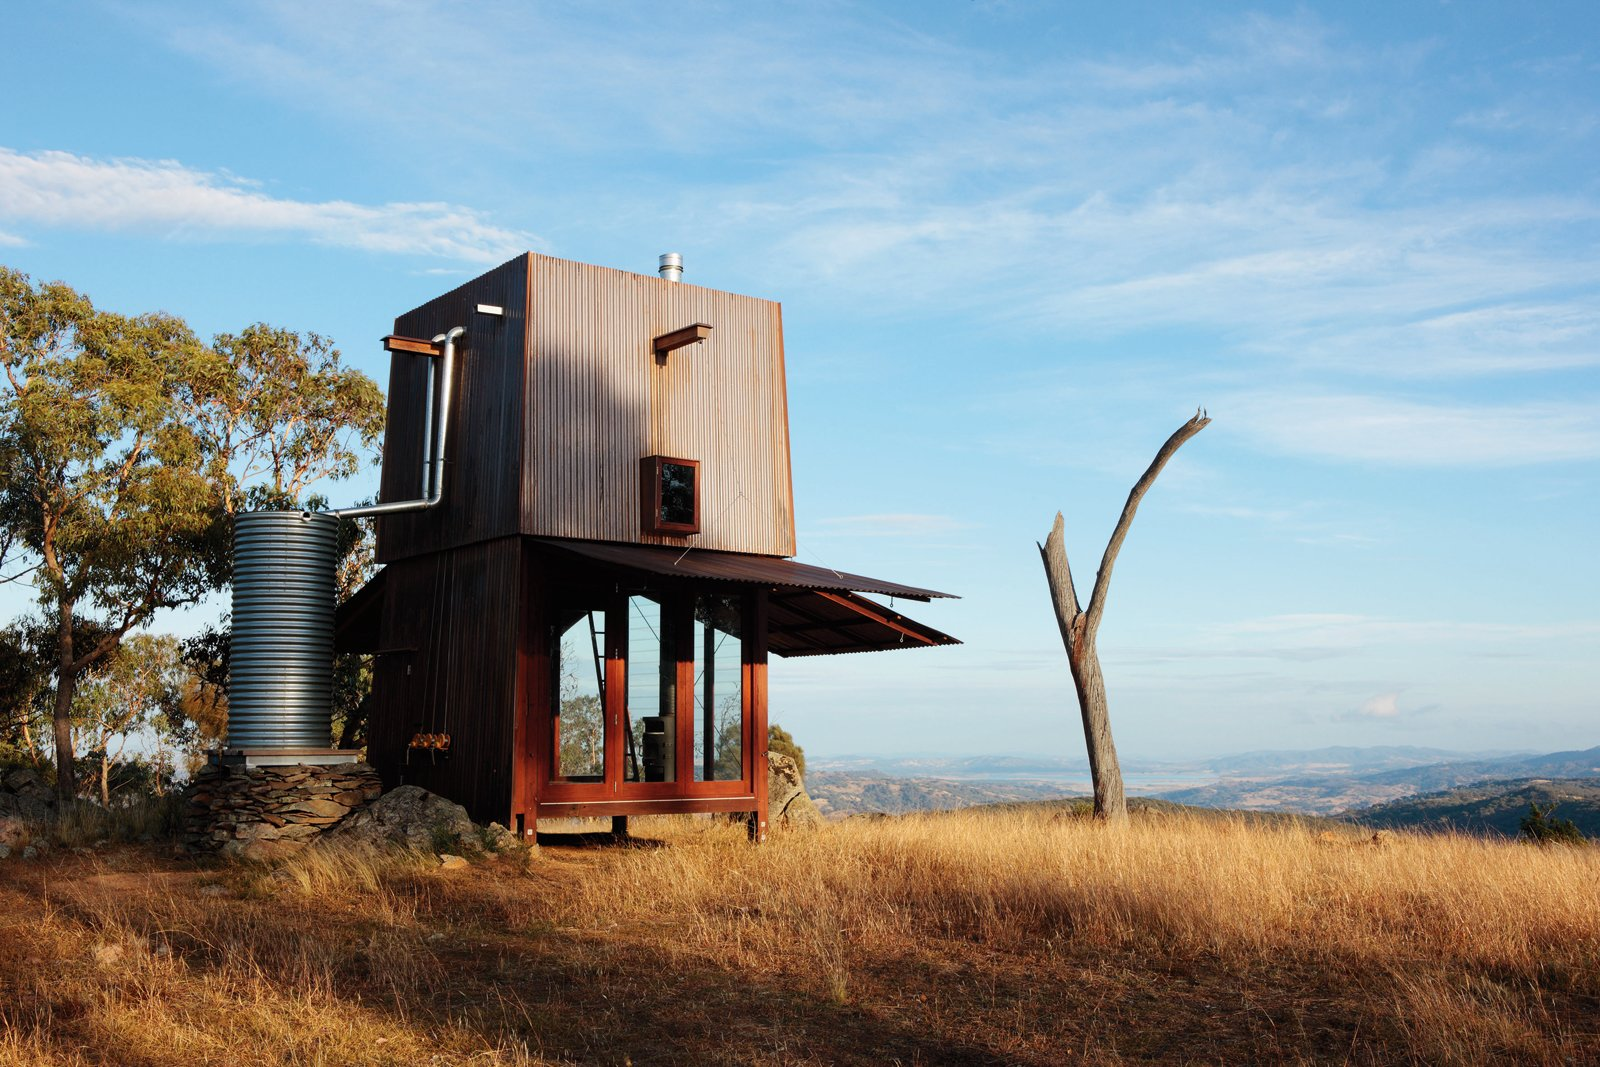 Rainwater is collected from the rooftop of the Permanent Camping! Mudgee abode by Casey Brown, NSW, Australia. Photo by Penny Clay  Green from 100 Contemporary Green Buildings